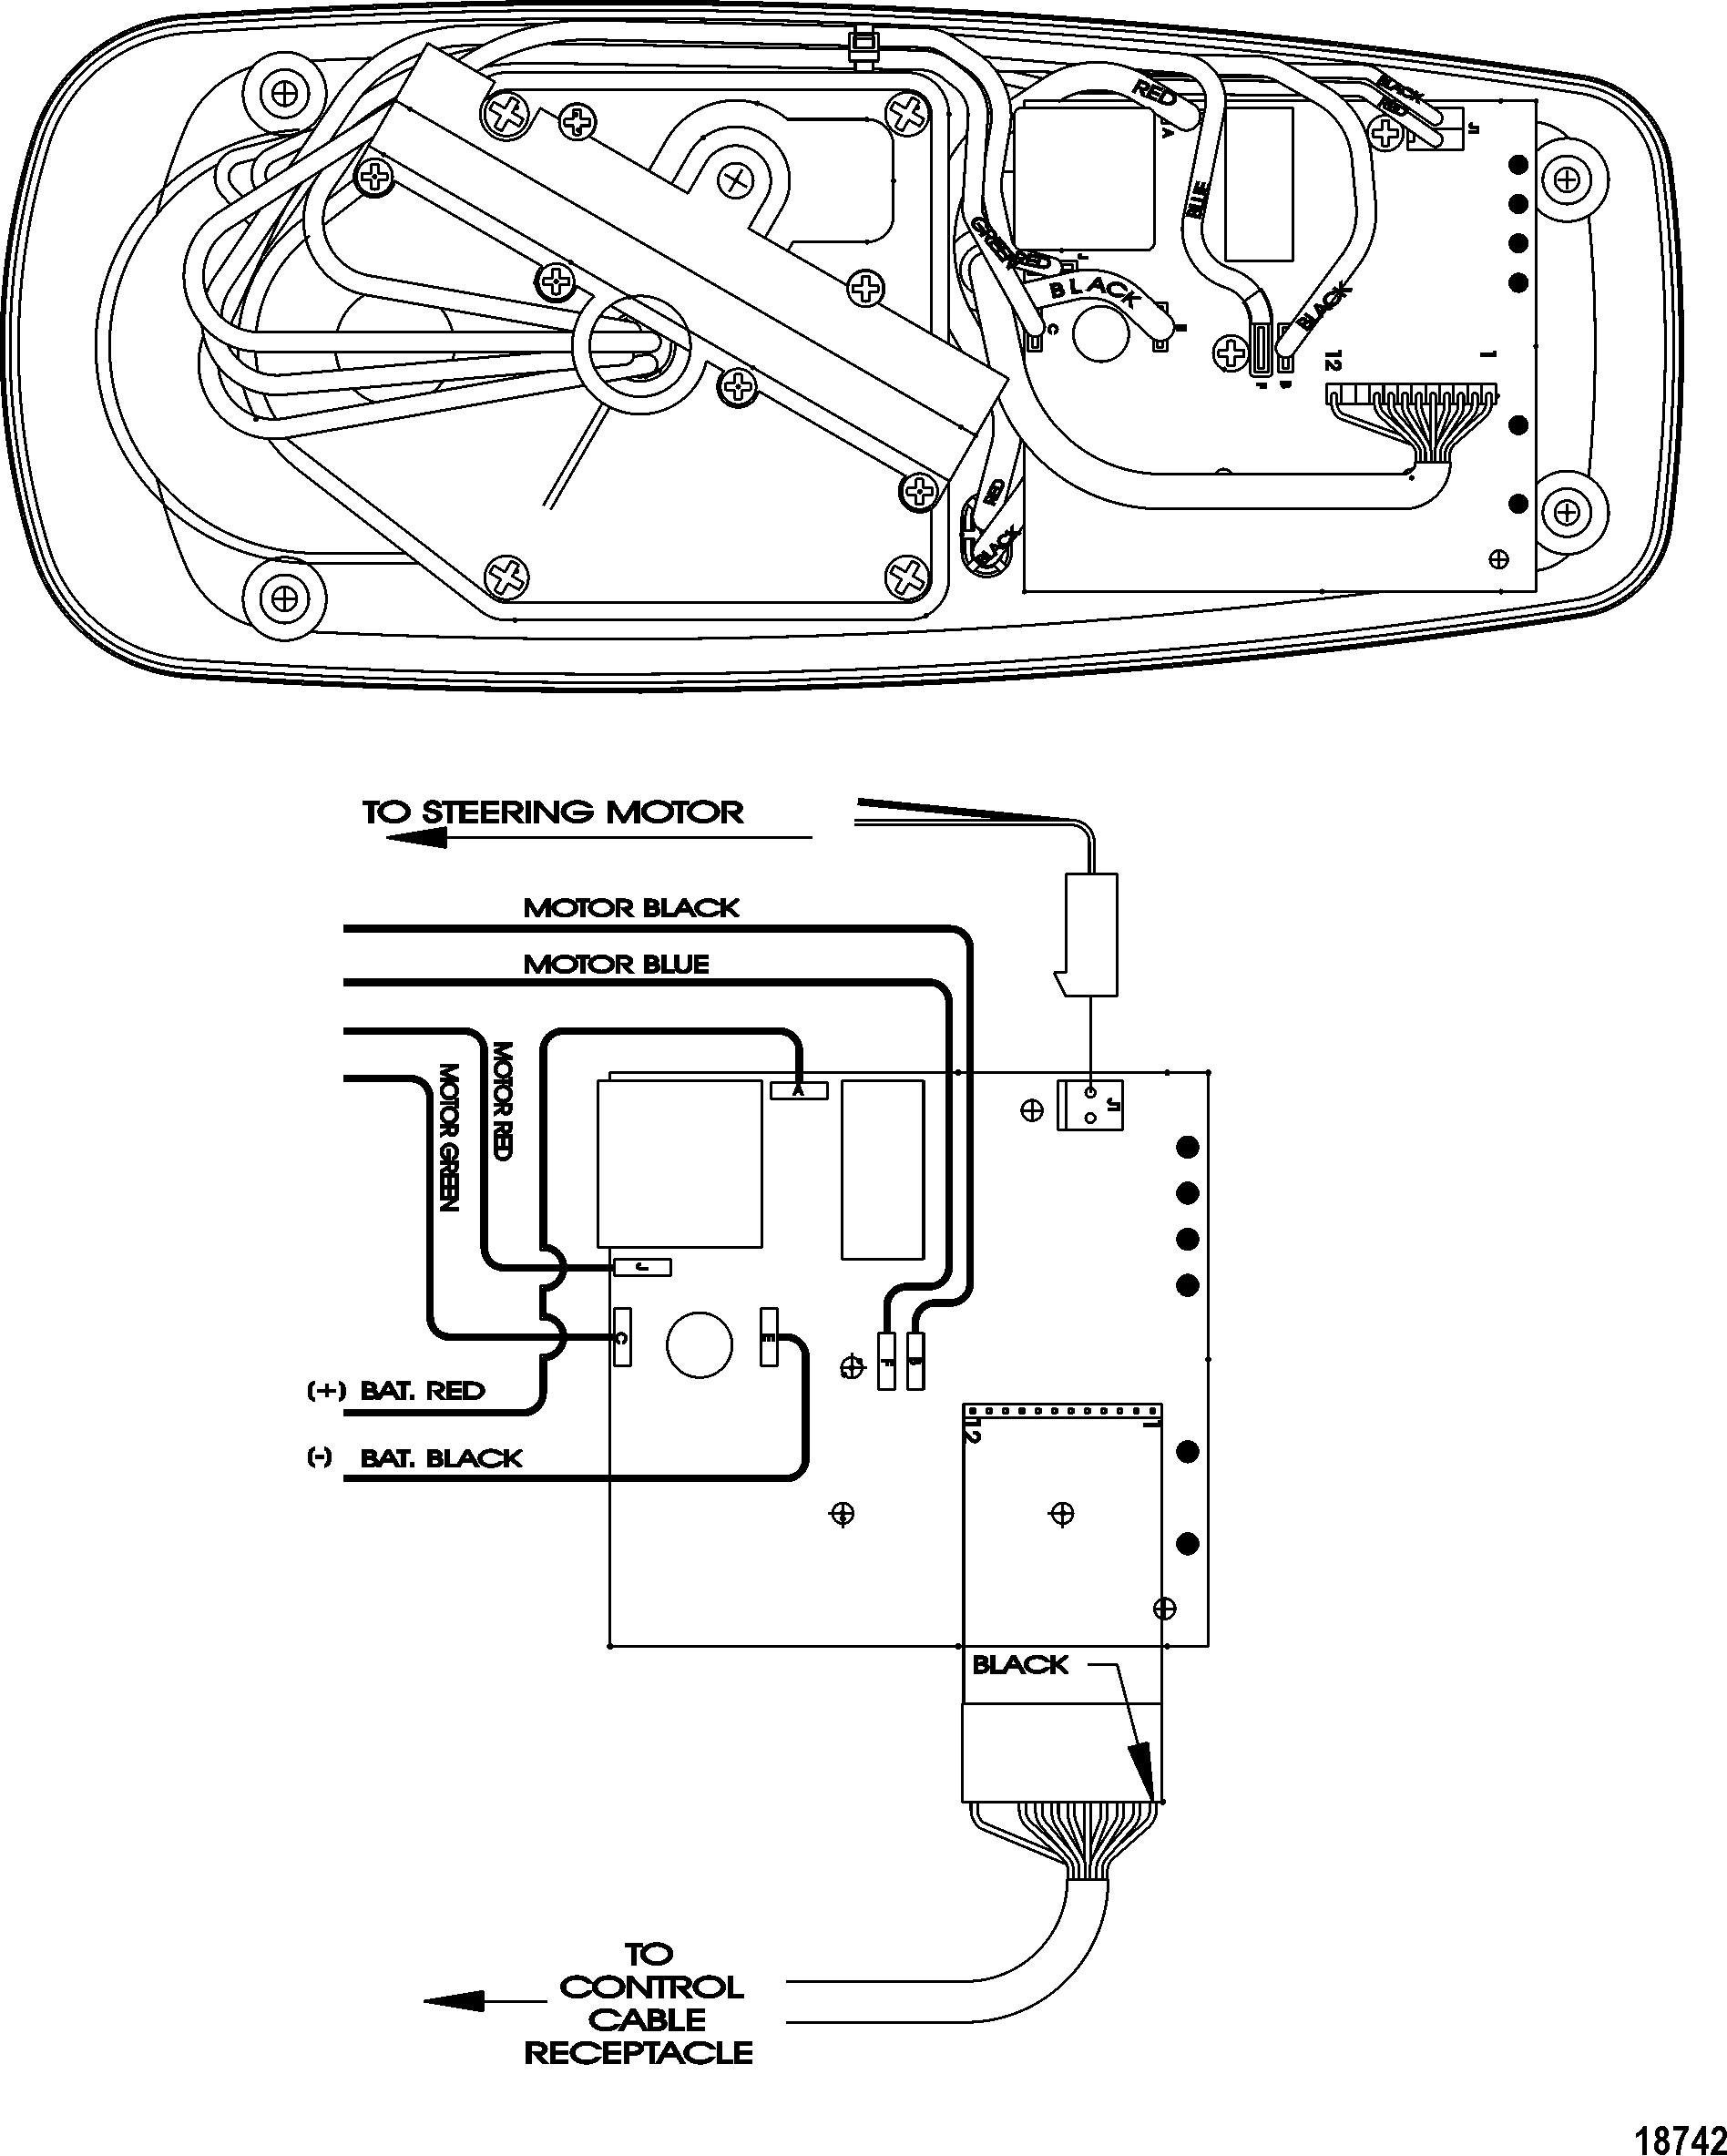 18742 motorguide wiring diagram motorguide parts diagram \u2022 free wiring mercury thruster trolling motor wiring diagram at reclaimingppi.co